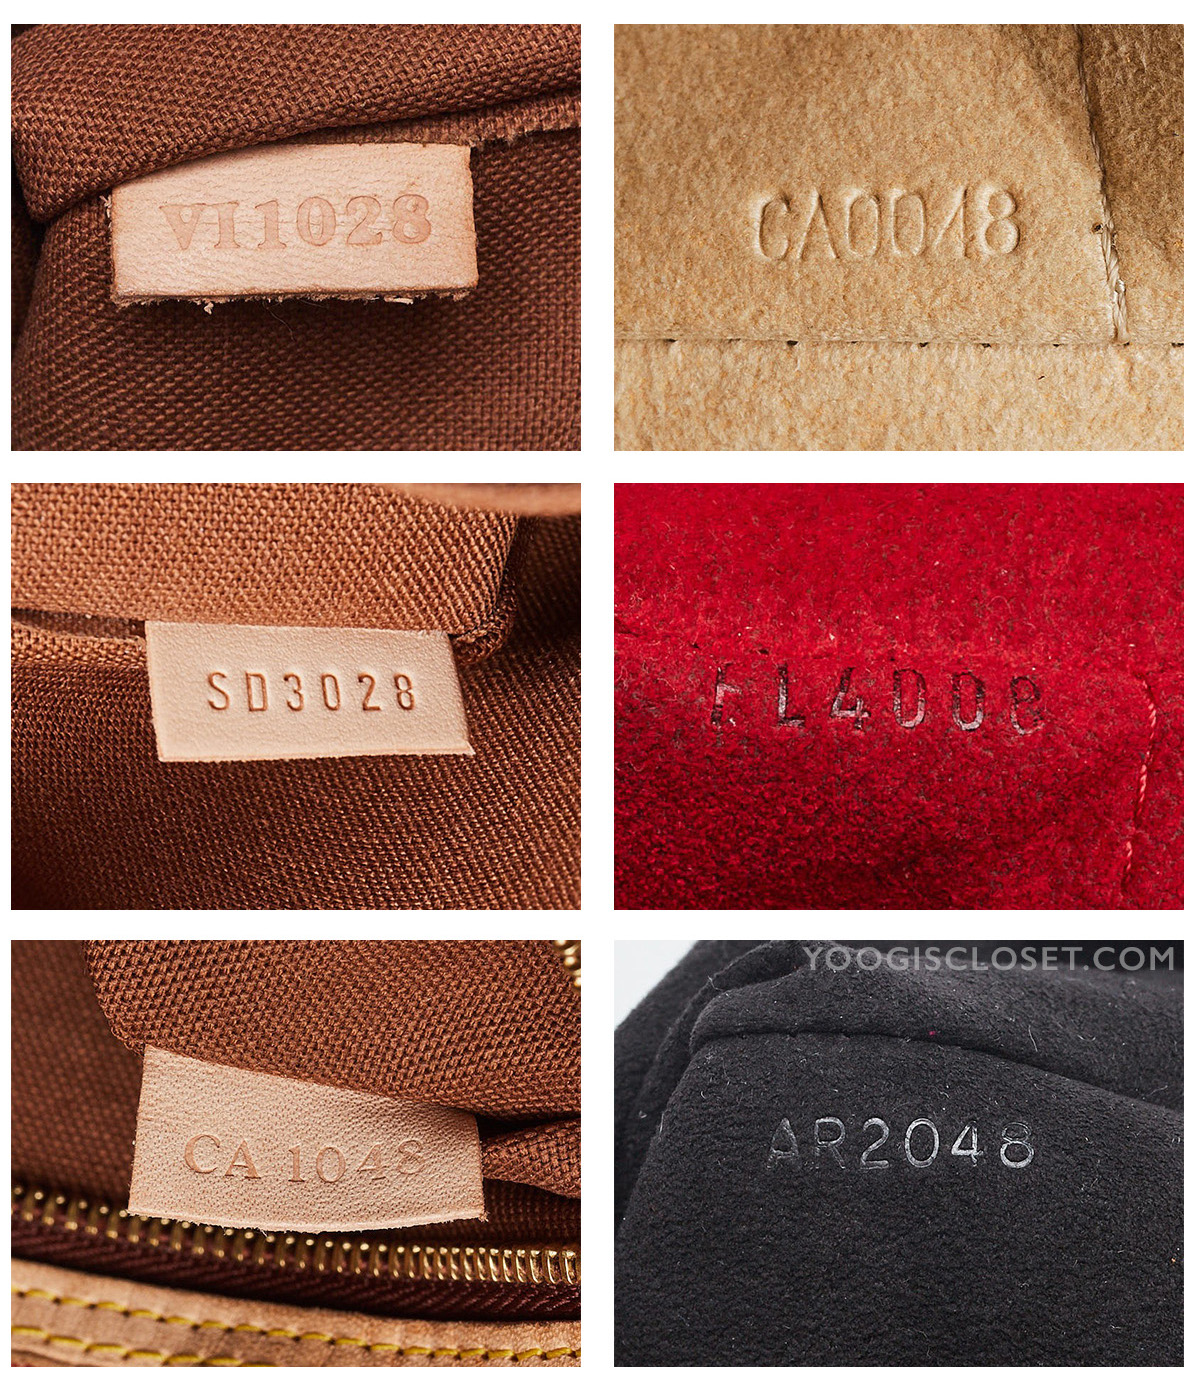 Examples of Louis Vuitton date codes